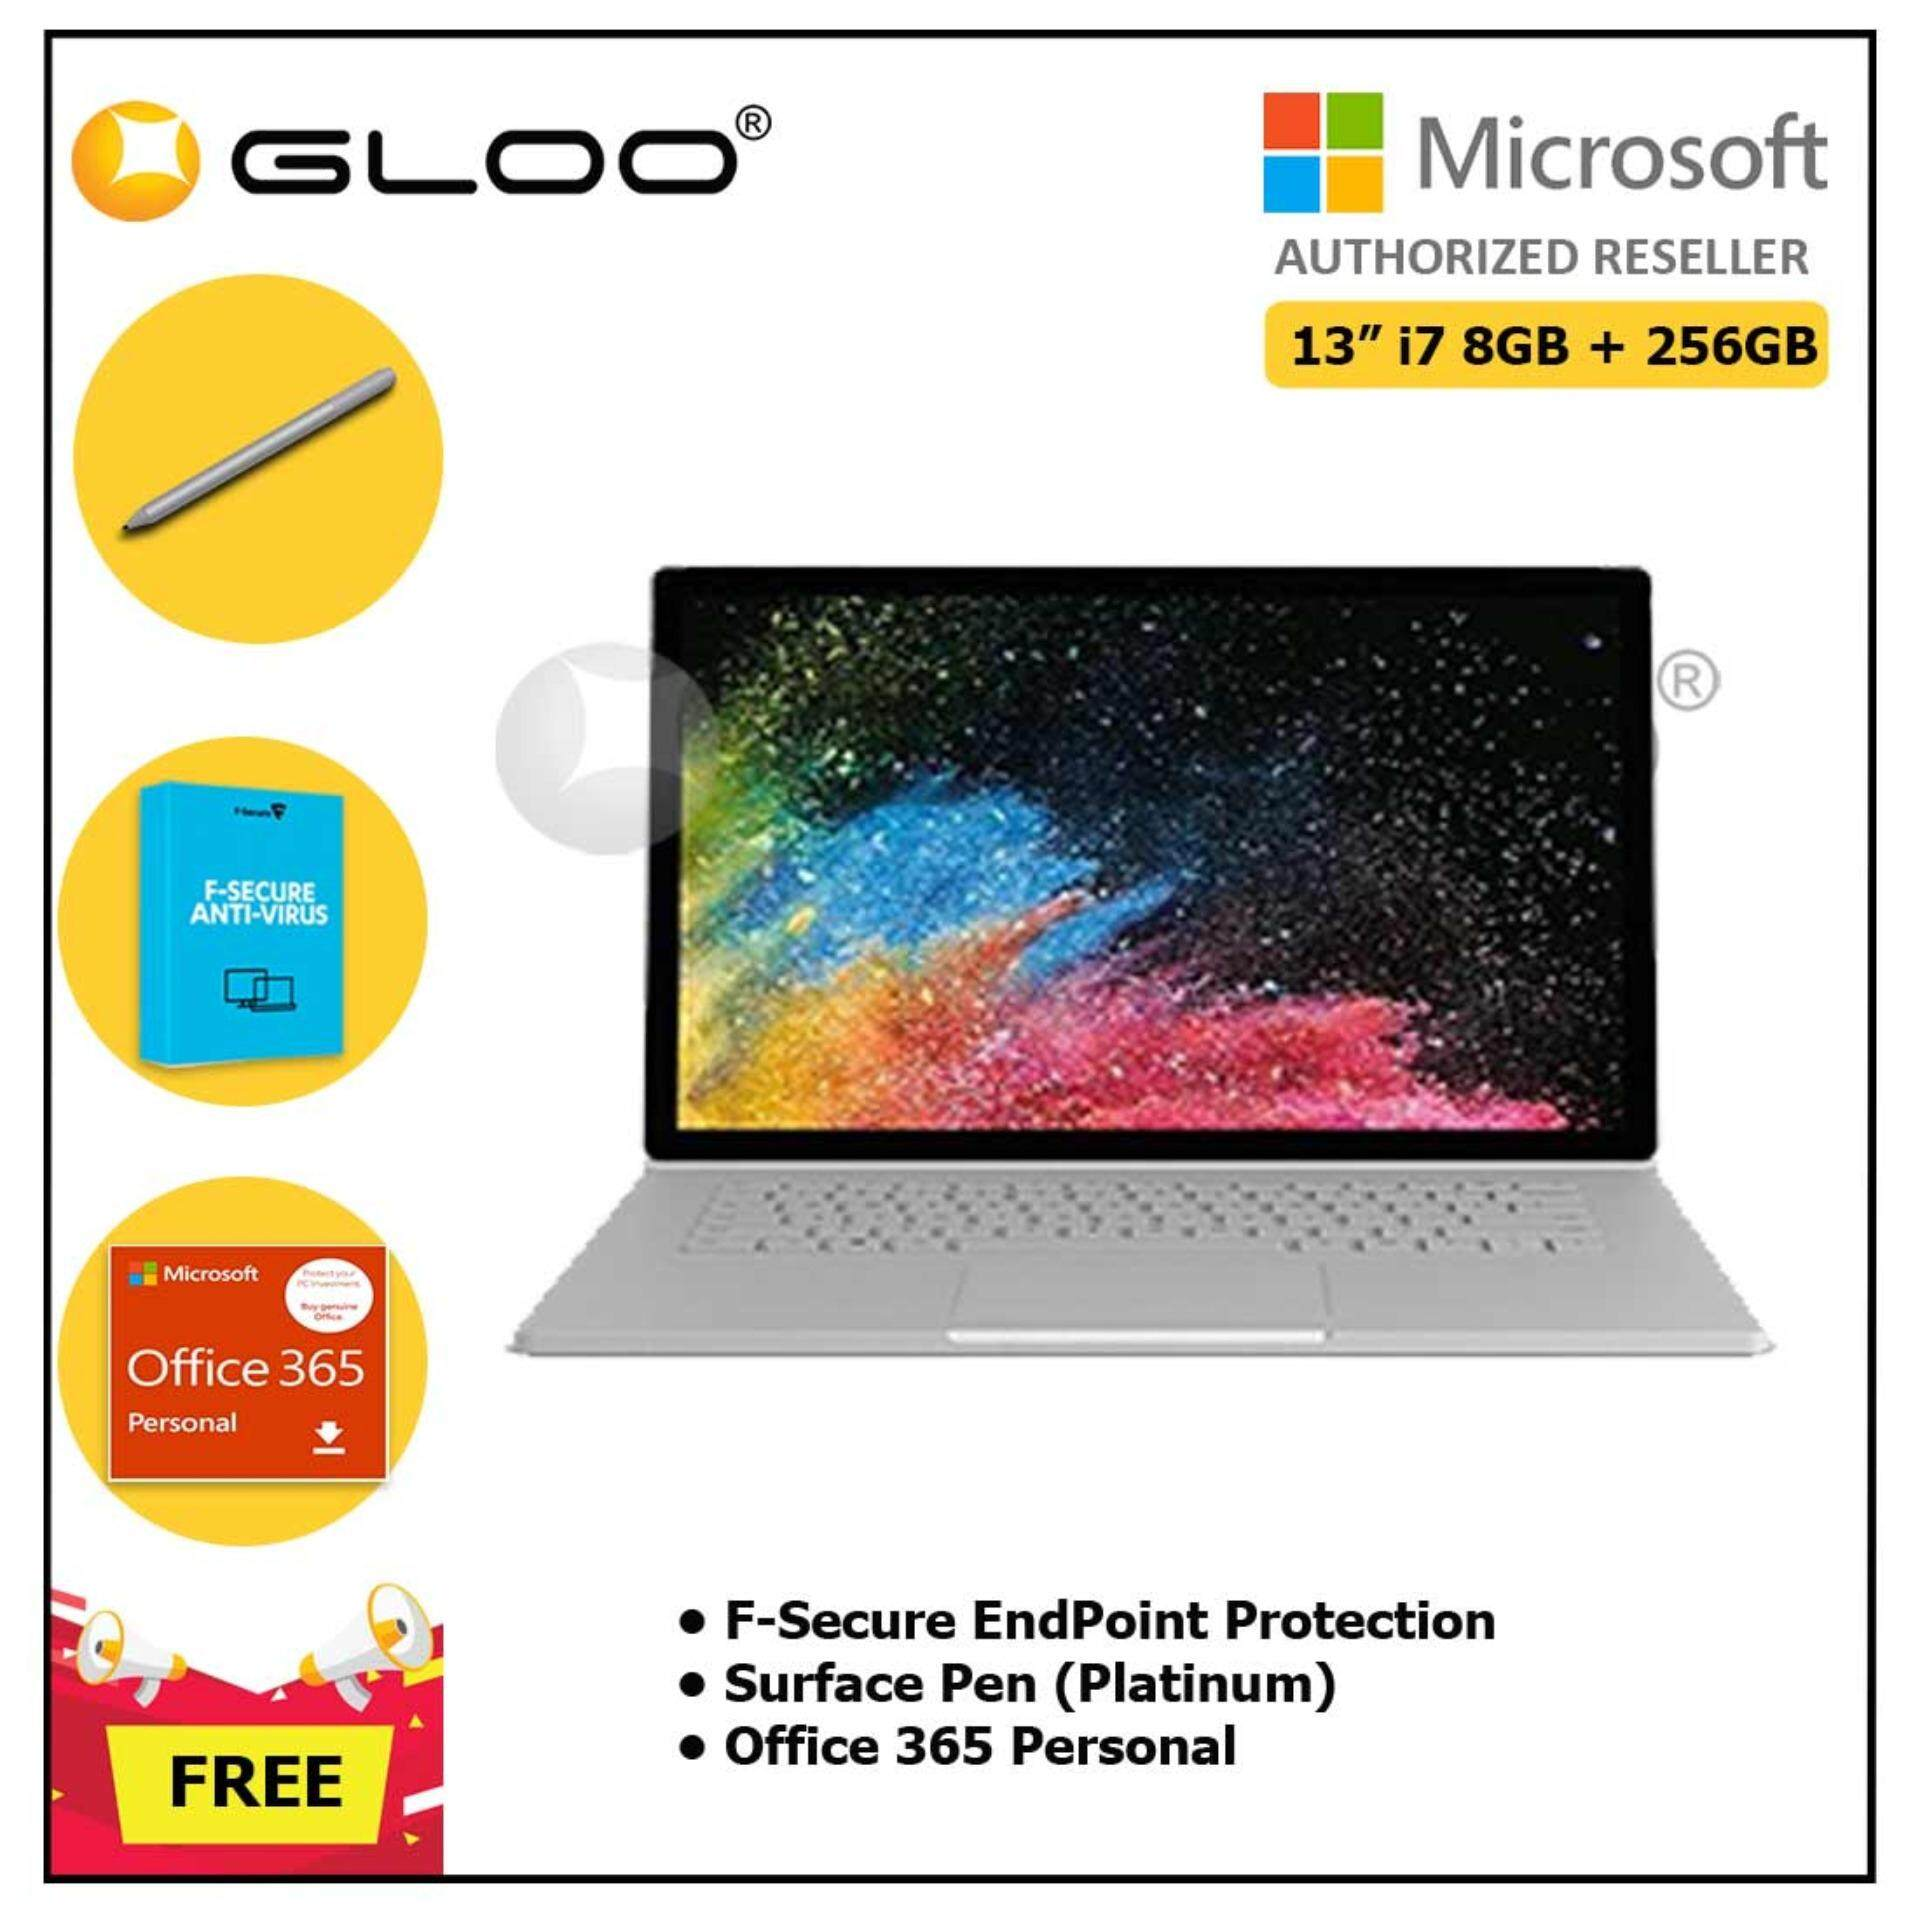 """Surface Book 2 13"""" i7/8GB 256GB + F-Secure EndPoint Protection + Office 365 Personal ESD + Pen Platinum"""